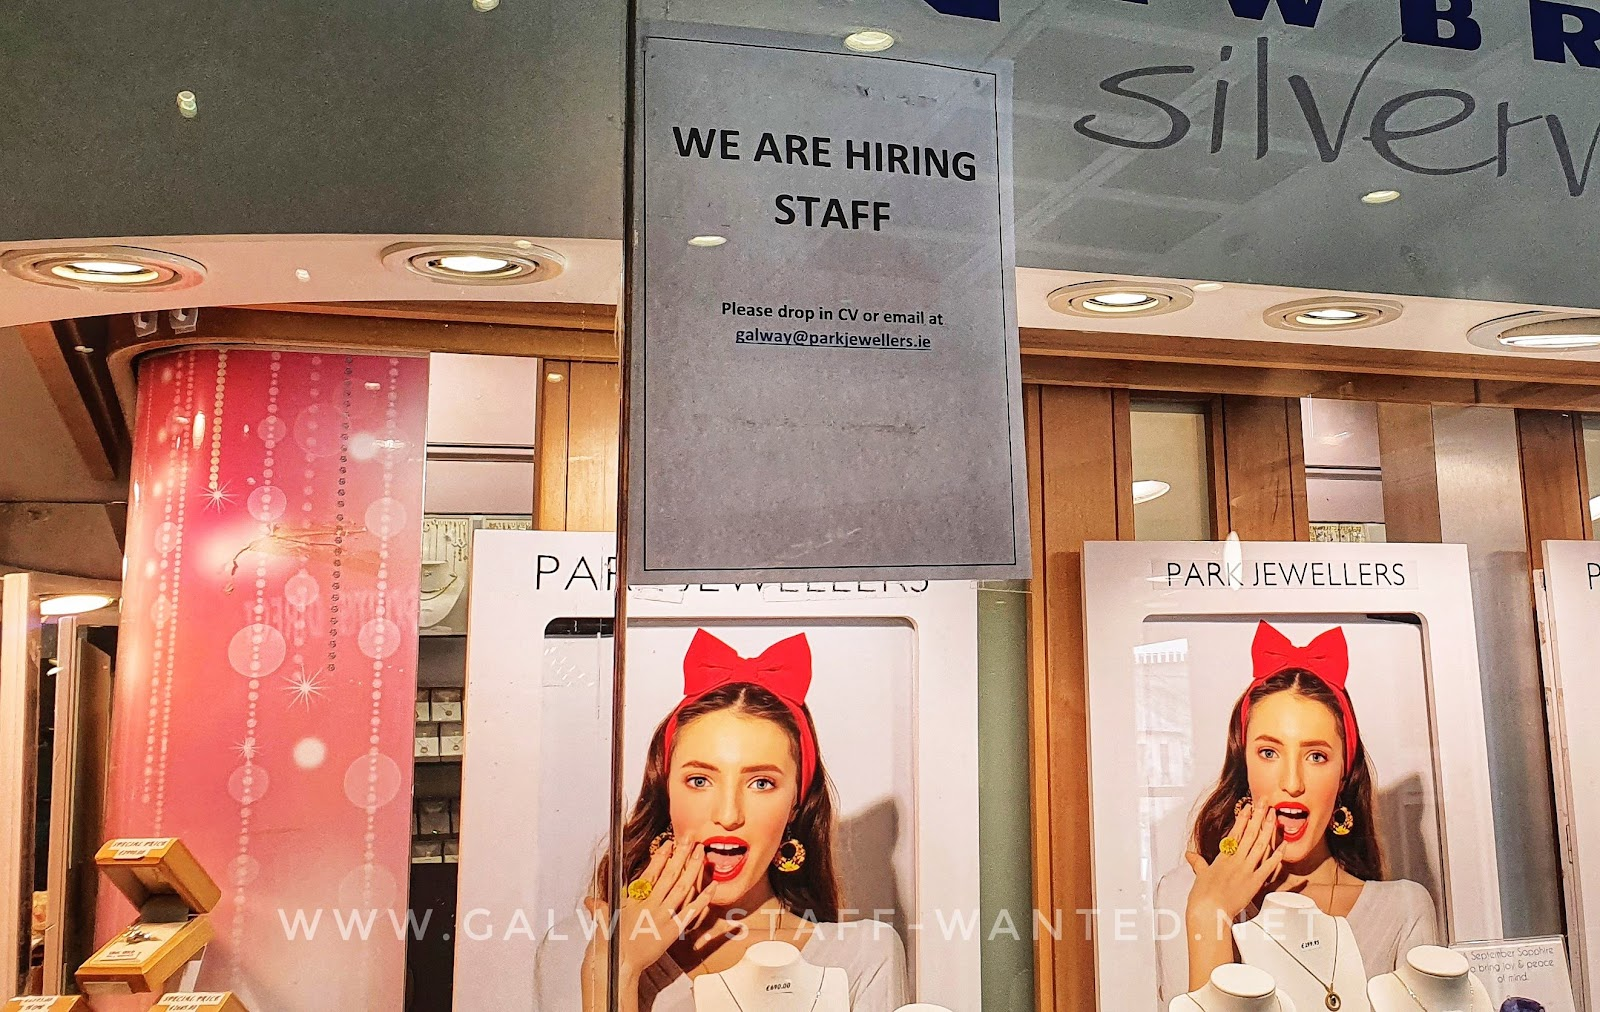 Jewellery store window in Galway city shopping centre, picture of a girl with a bright red ribbon and bow on the top of her head, pointing out like bunny ears